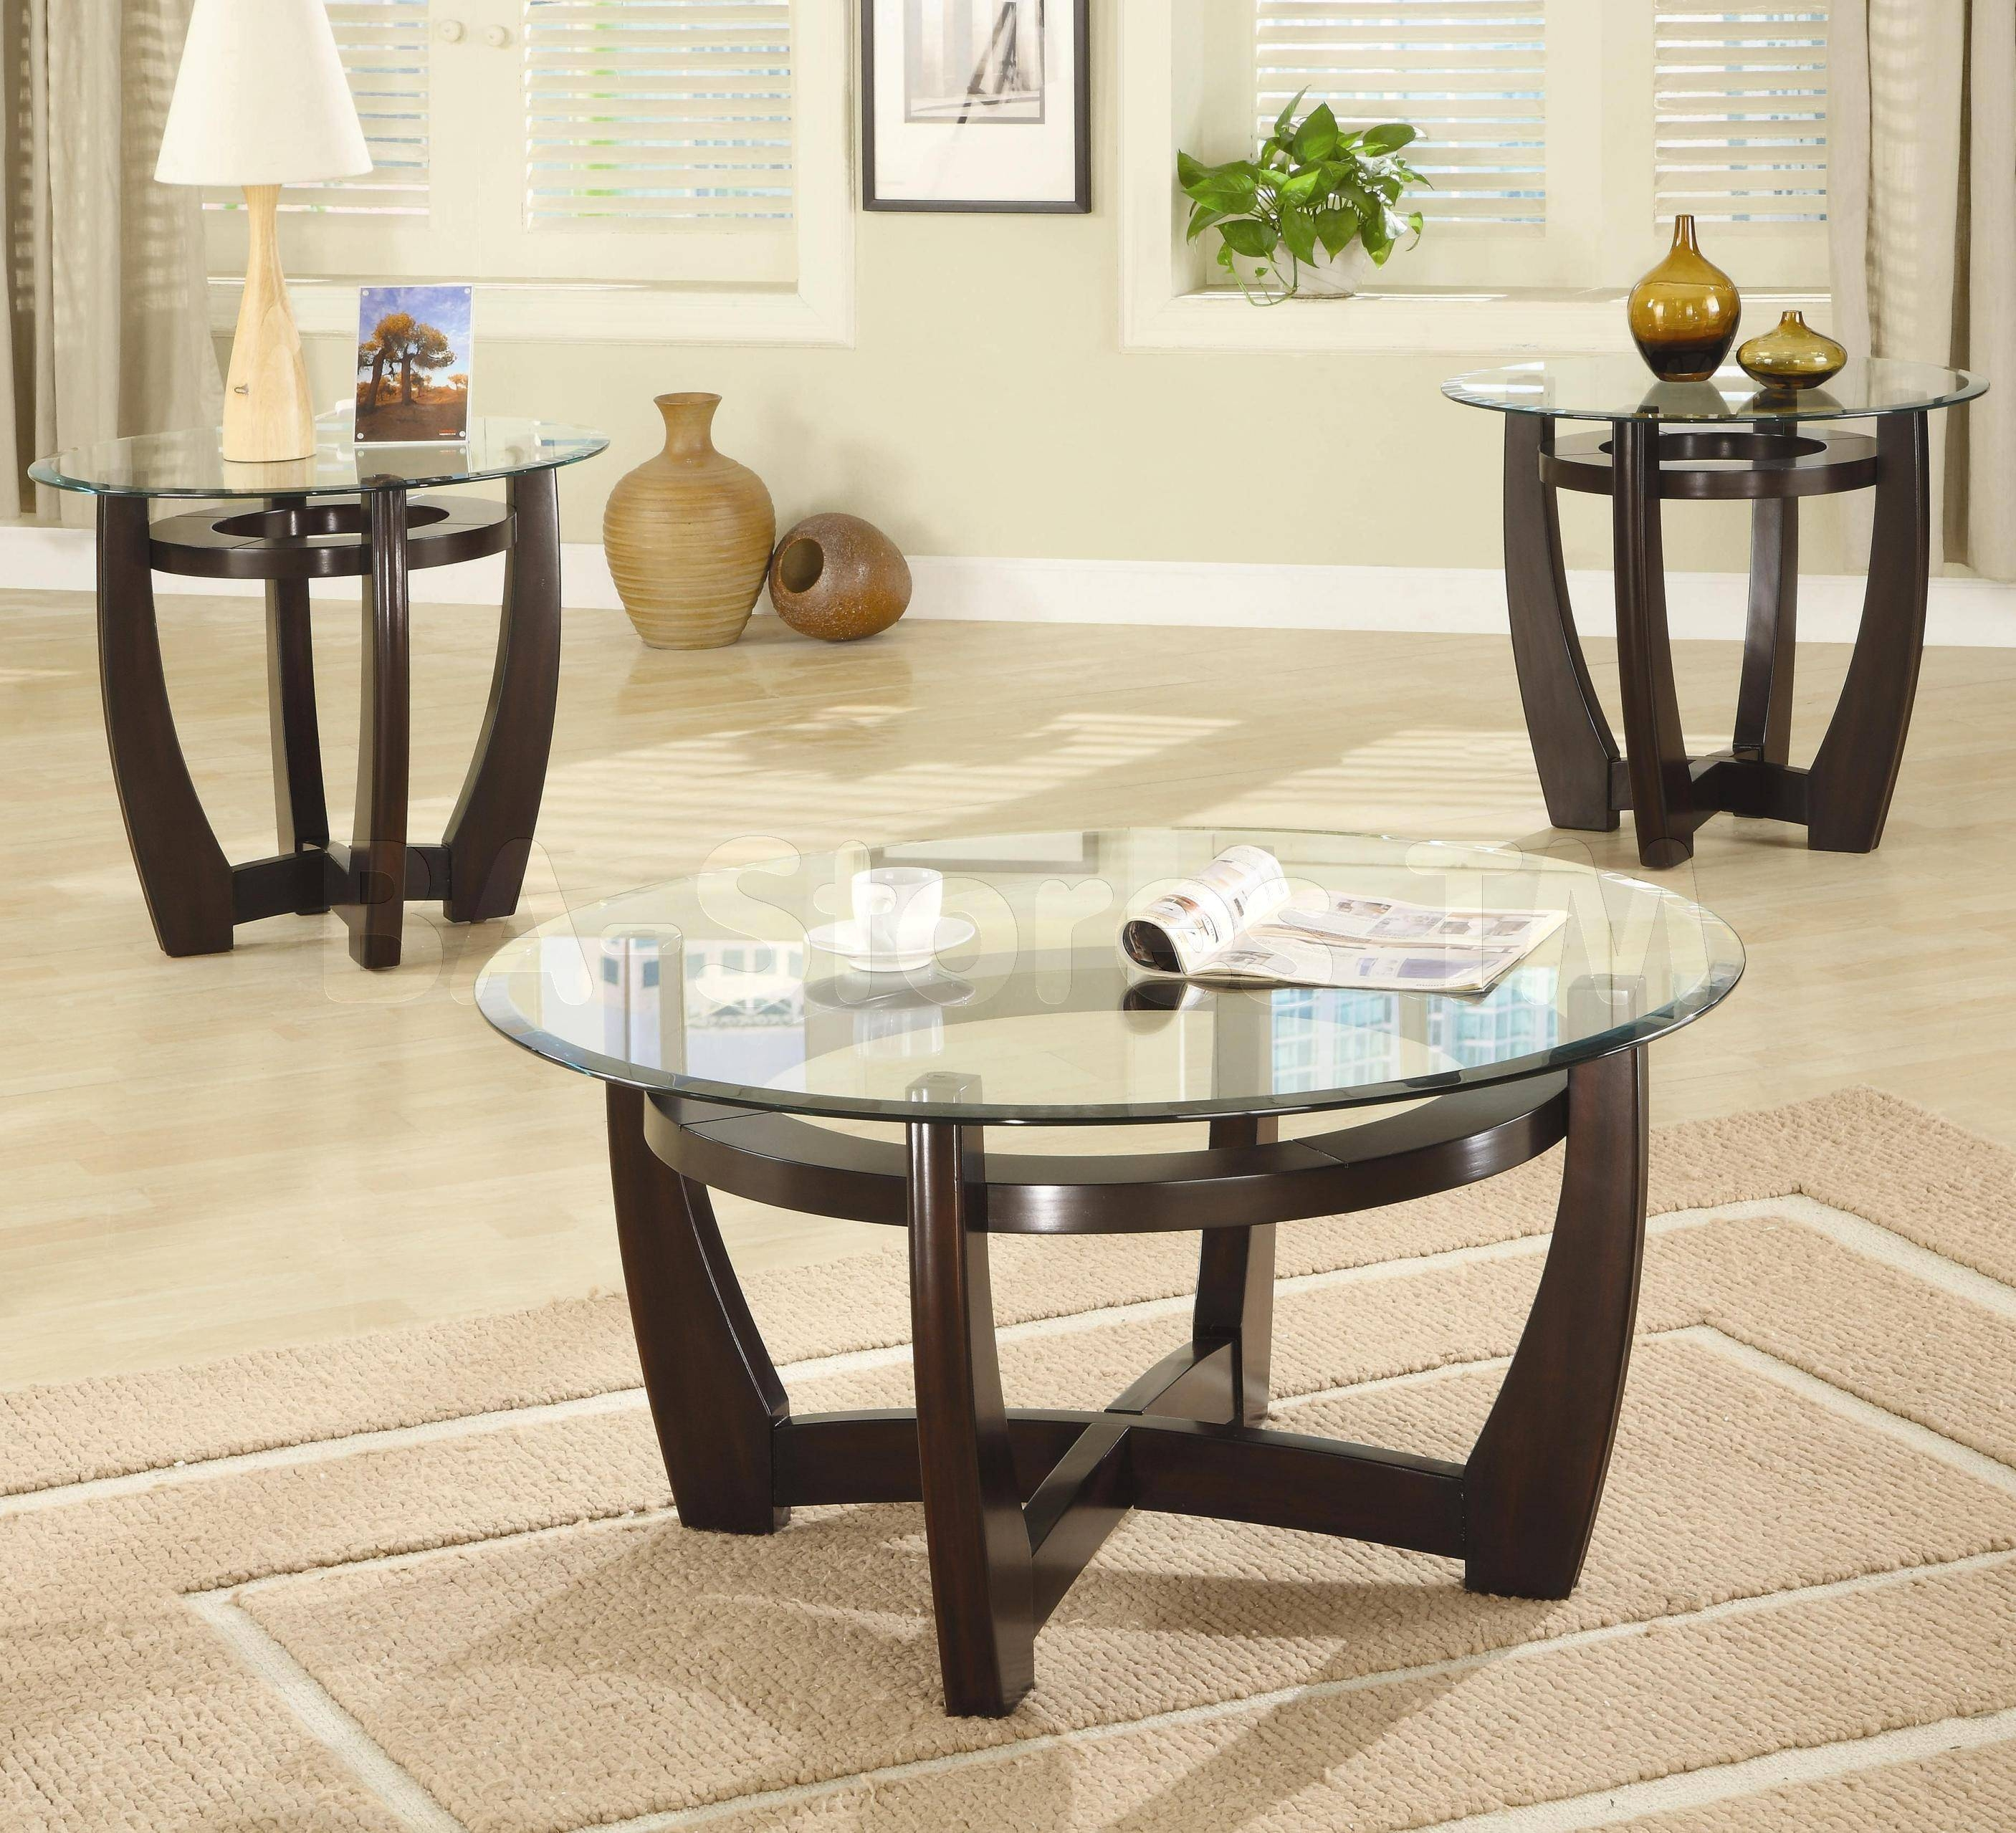 30 Best Ideas of Coffee Tables and Side Table Sets